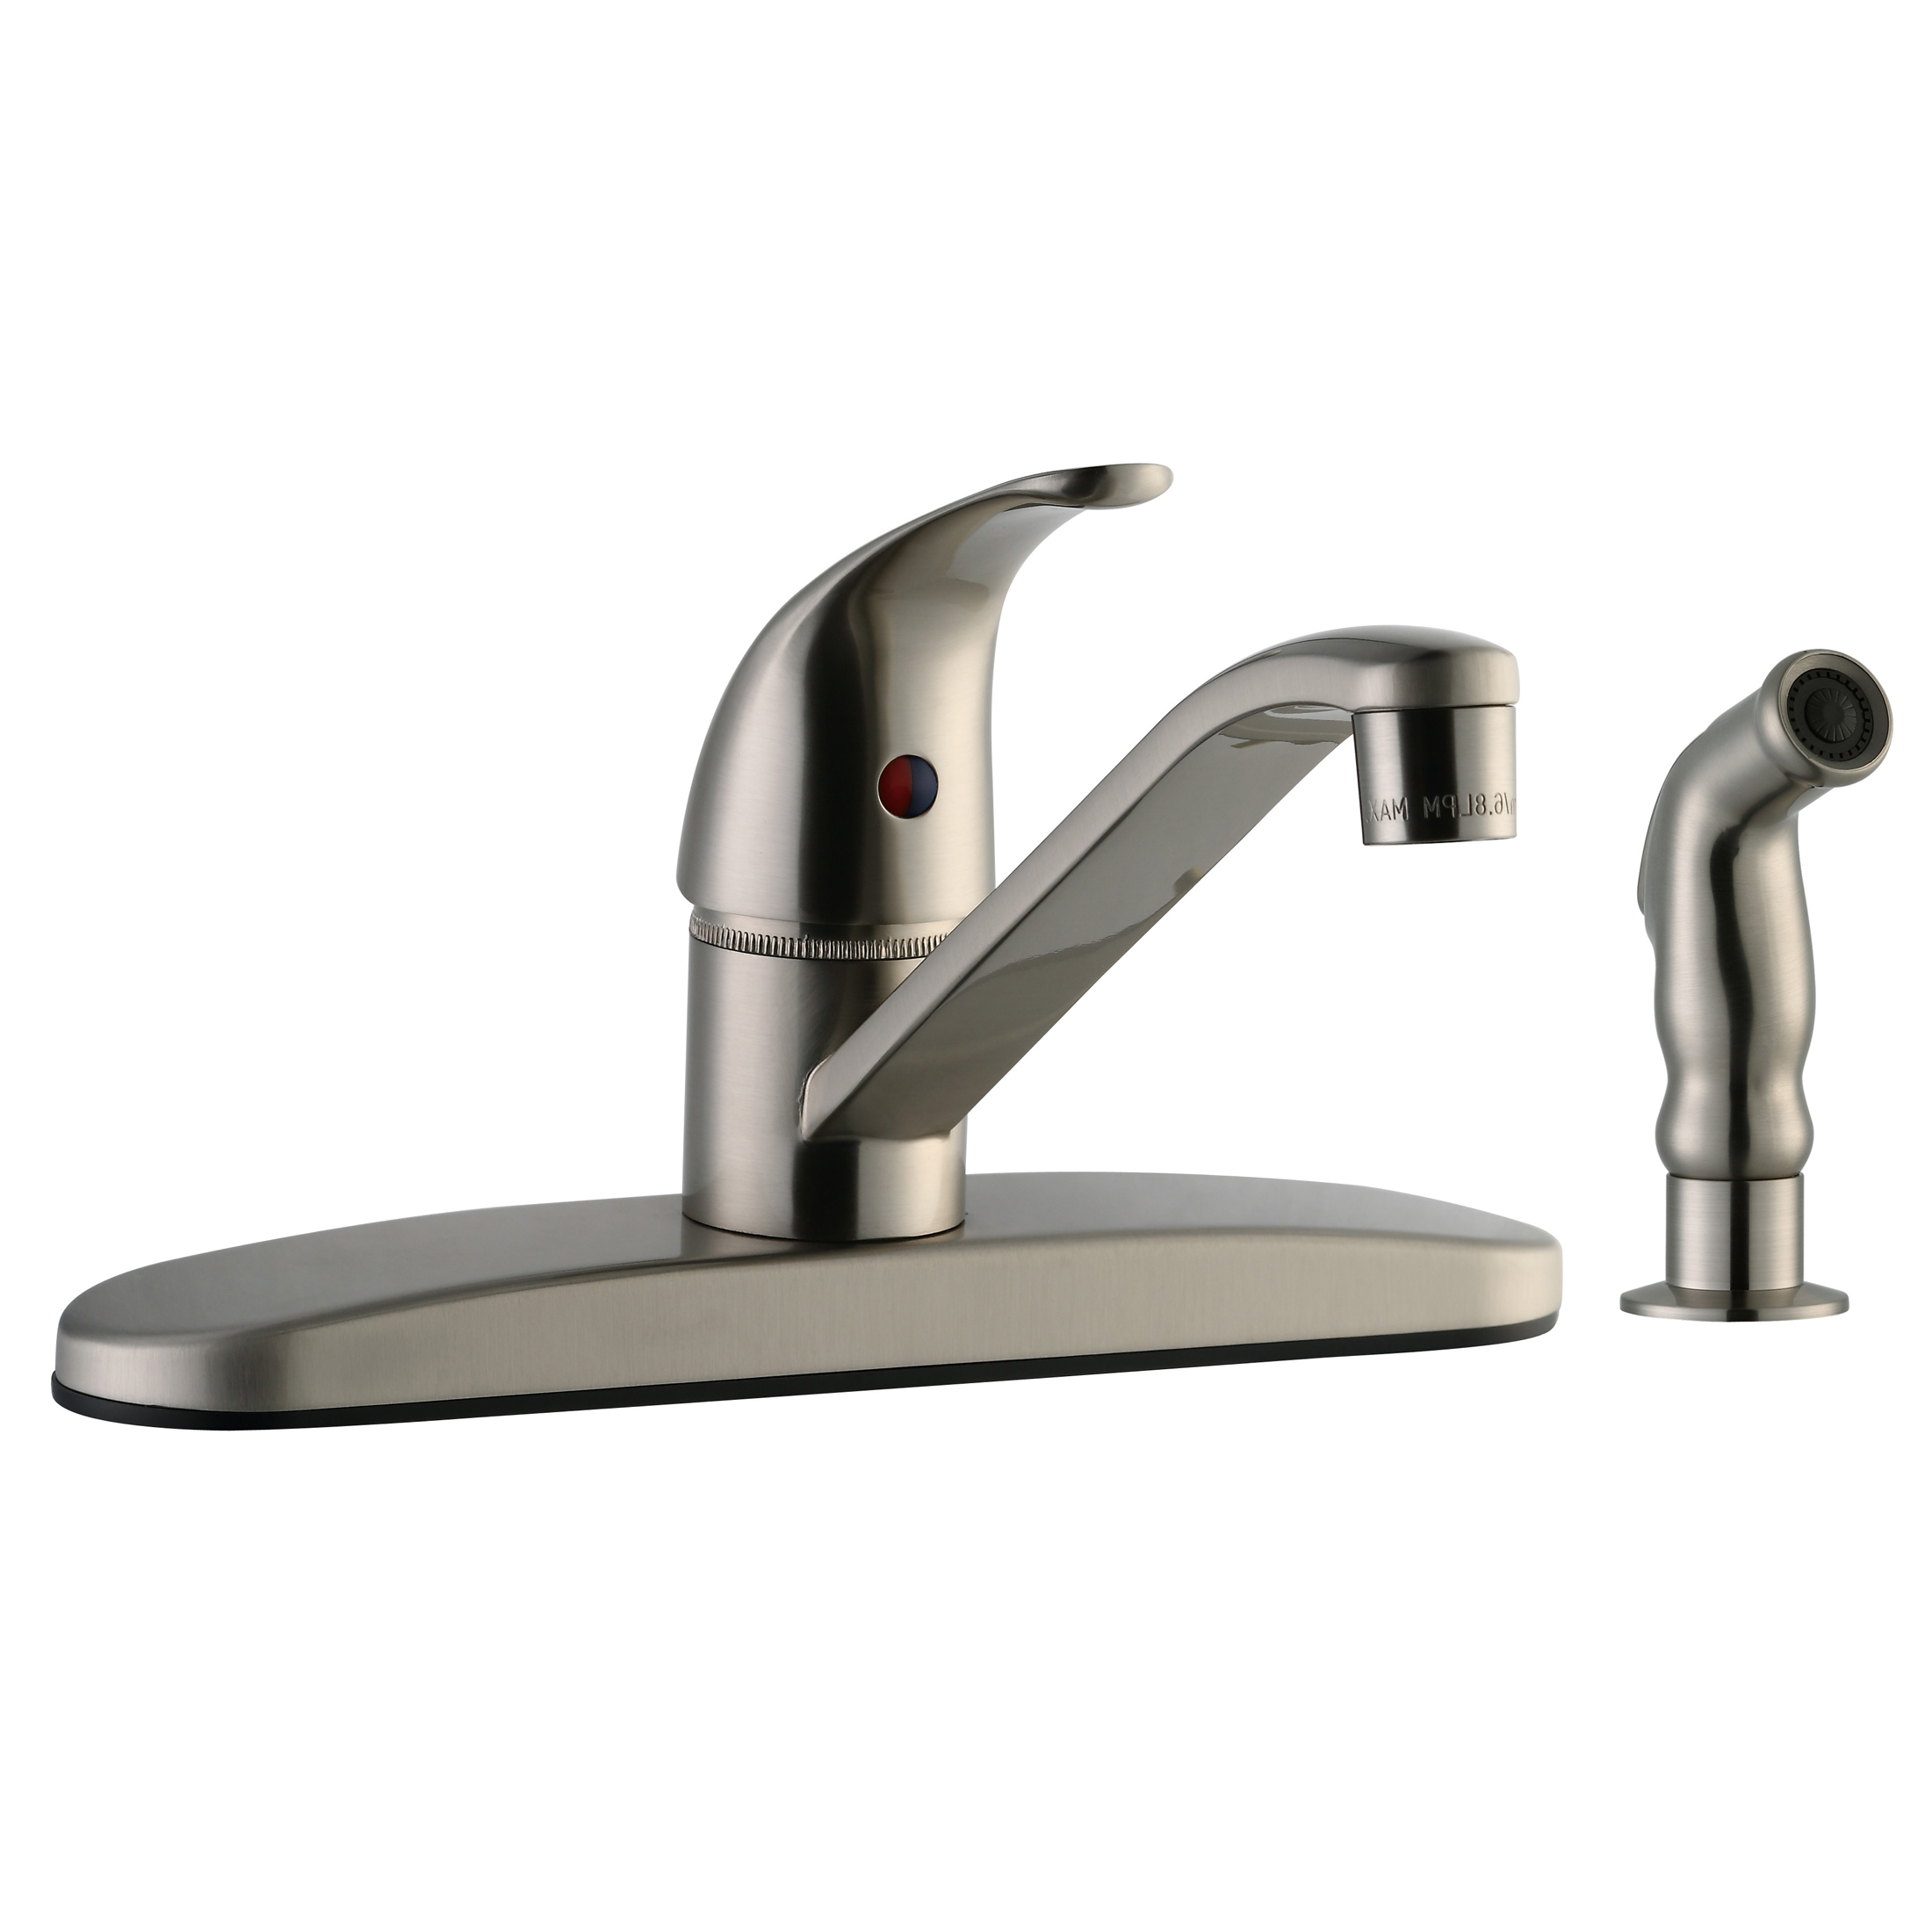 amazing Design House Kitchen Faucet Part - 11: Middleton Kitchen Faucet With Sidesprayer 545855 | Plumbing | Design House